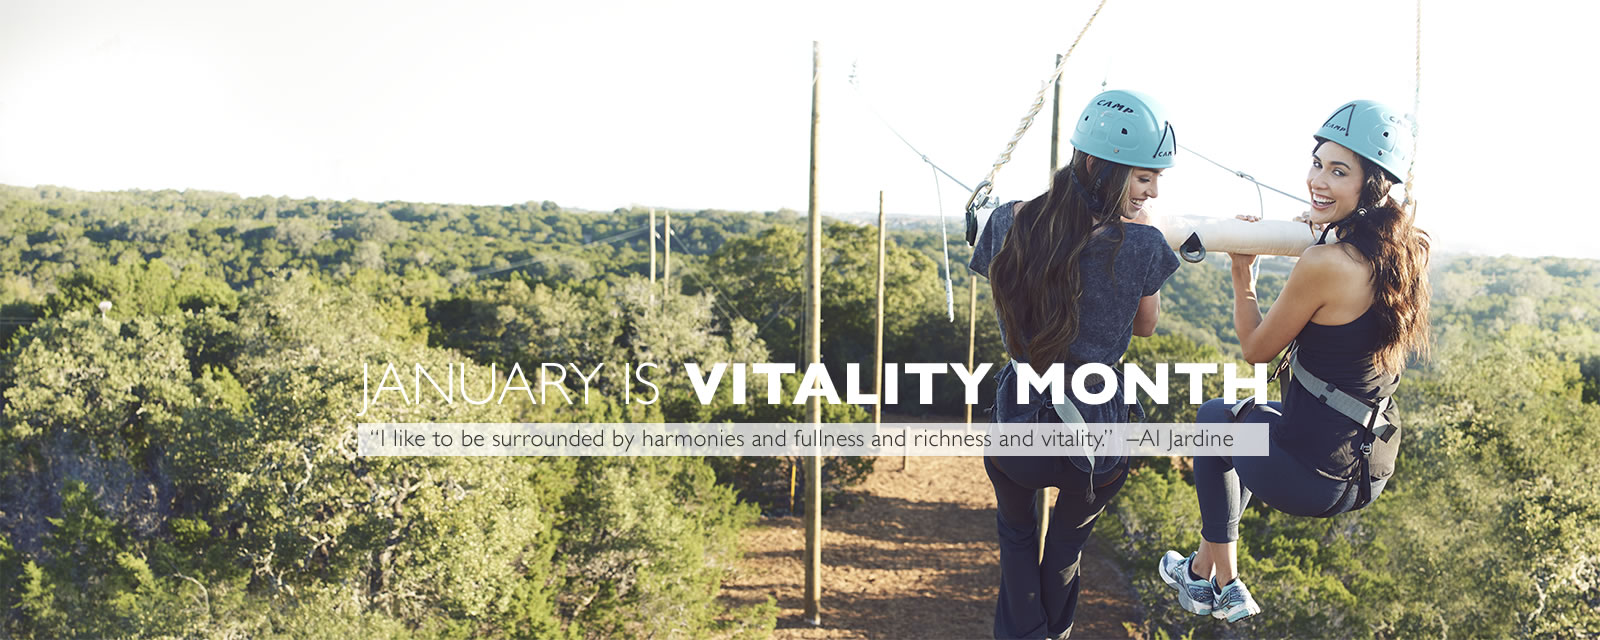 January is vitality month at Travaasa